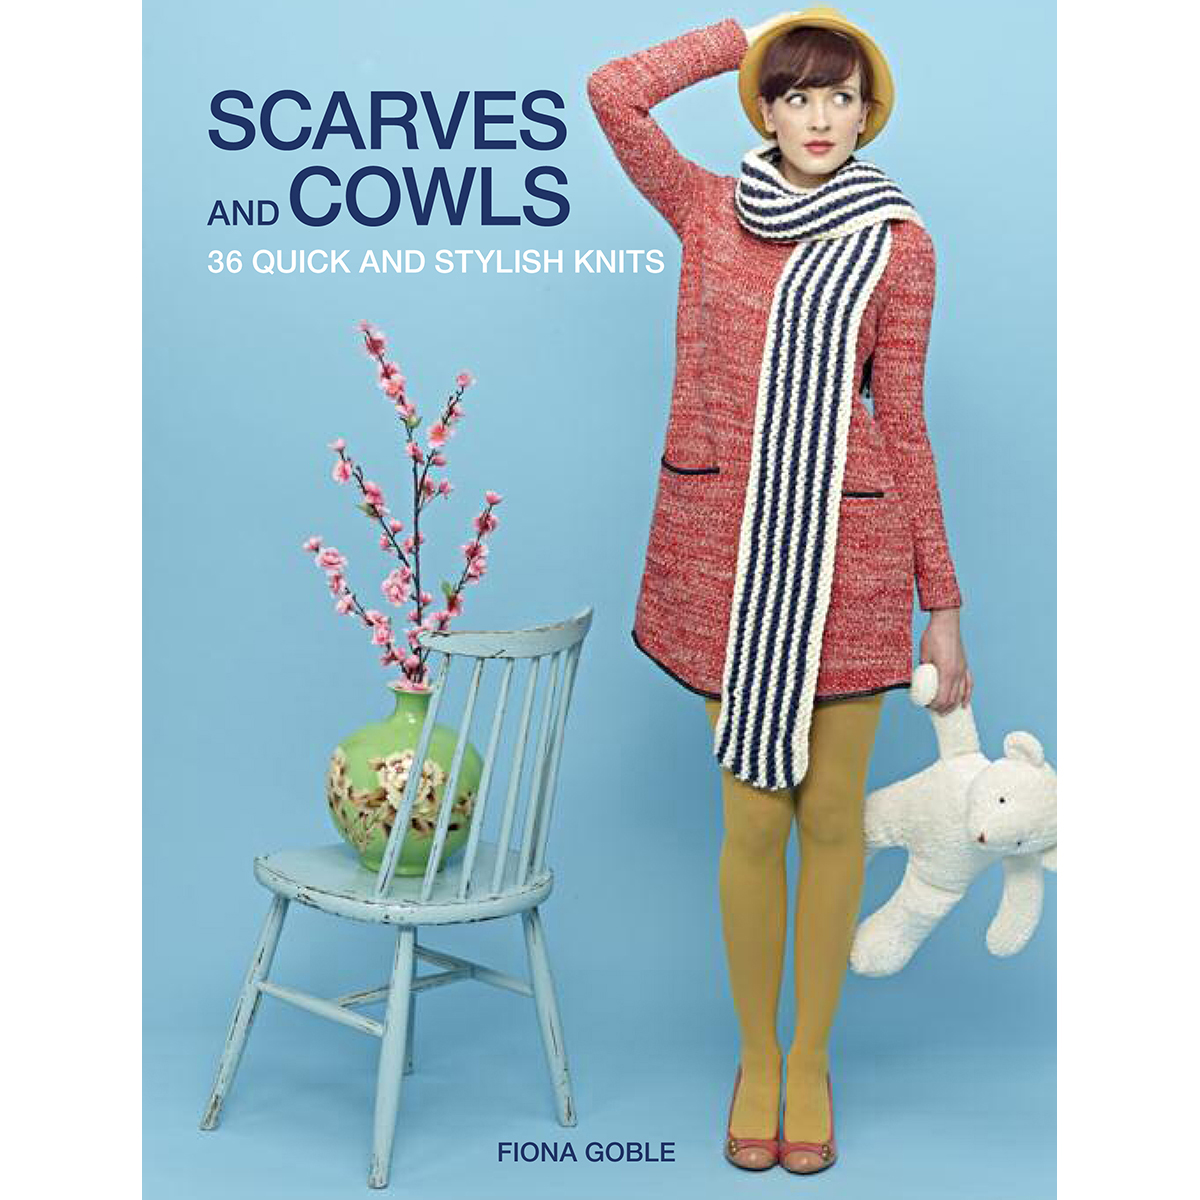 Cico Books-Scarves & Cowls-36 Quick & Stylish Knits, Pk 1, Cico